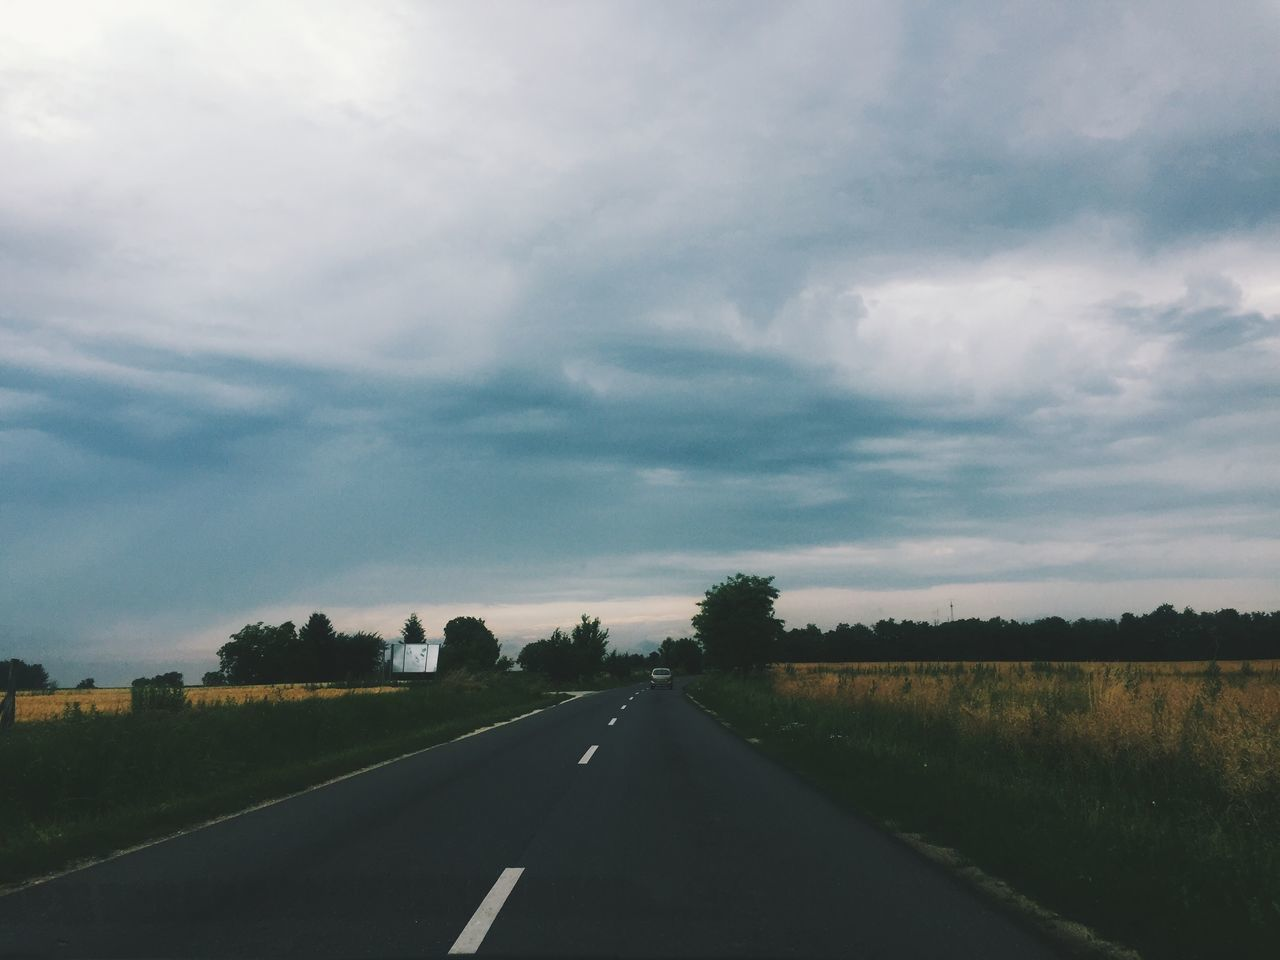 road, the way forward, transportation, diminishing perspective, sky, tree, cloud - sky, nature, landscape, scenics, no people, car, tranquil scene, journey, tranquility, beauty in nature, day, outdoors, grass